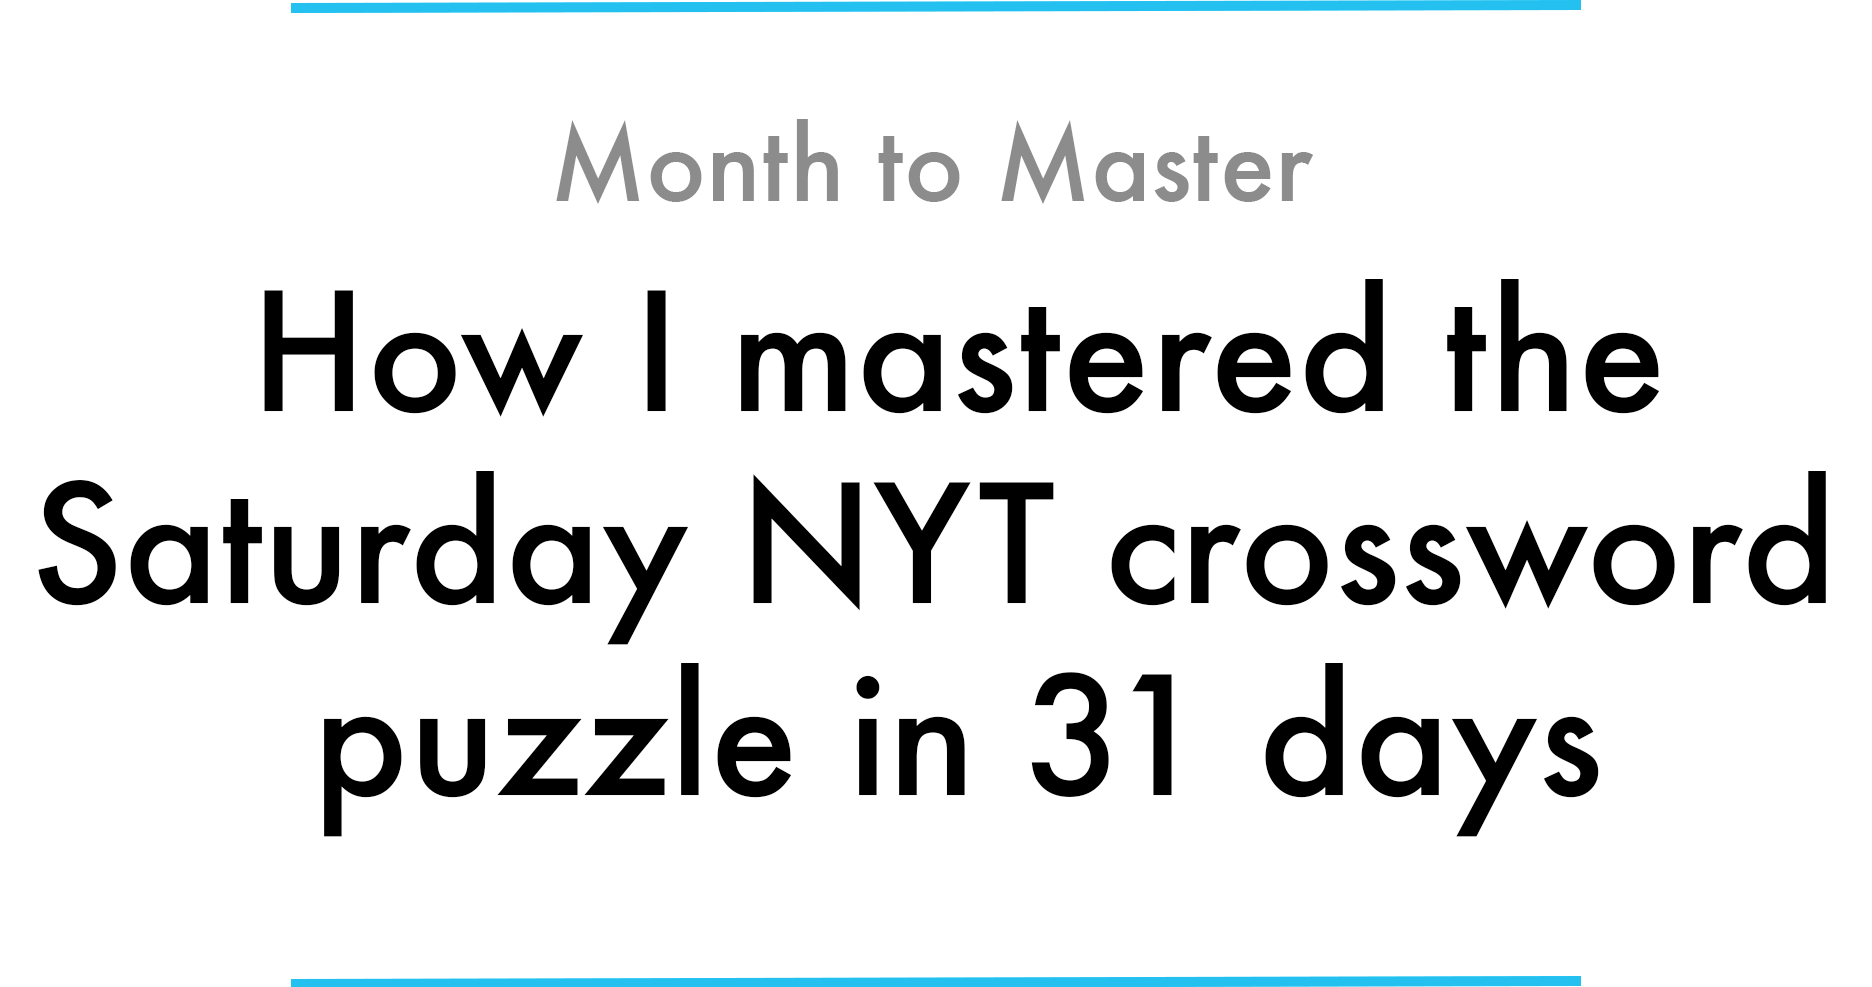 photograph about Printable Ny Times Crossword Puzzles named How I mastered the Saay NYT crossword puzzle within just 31 times